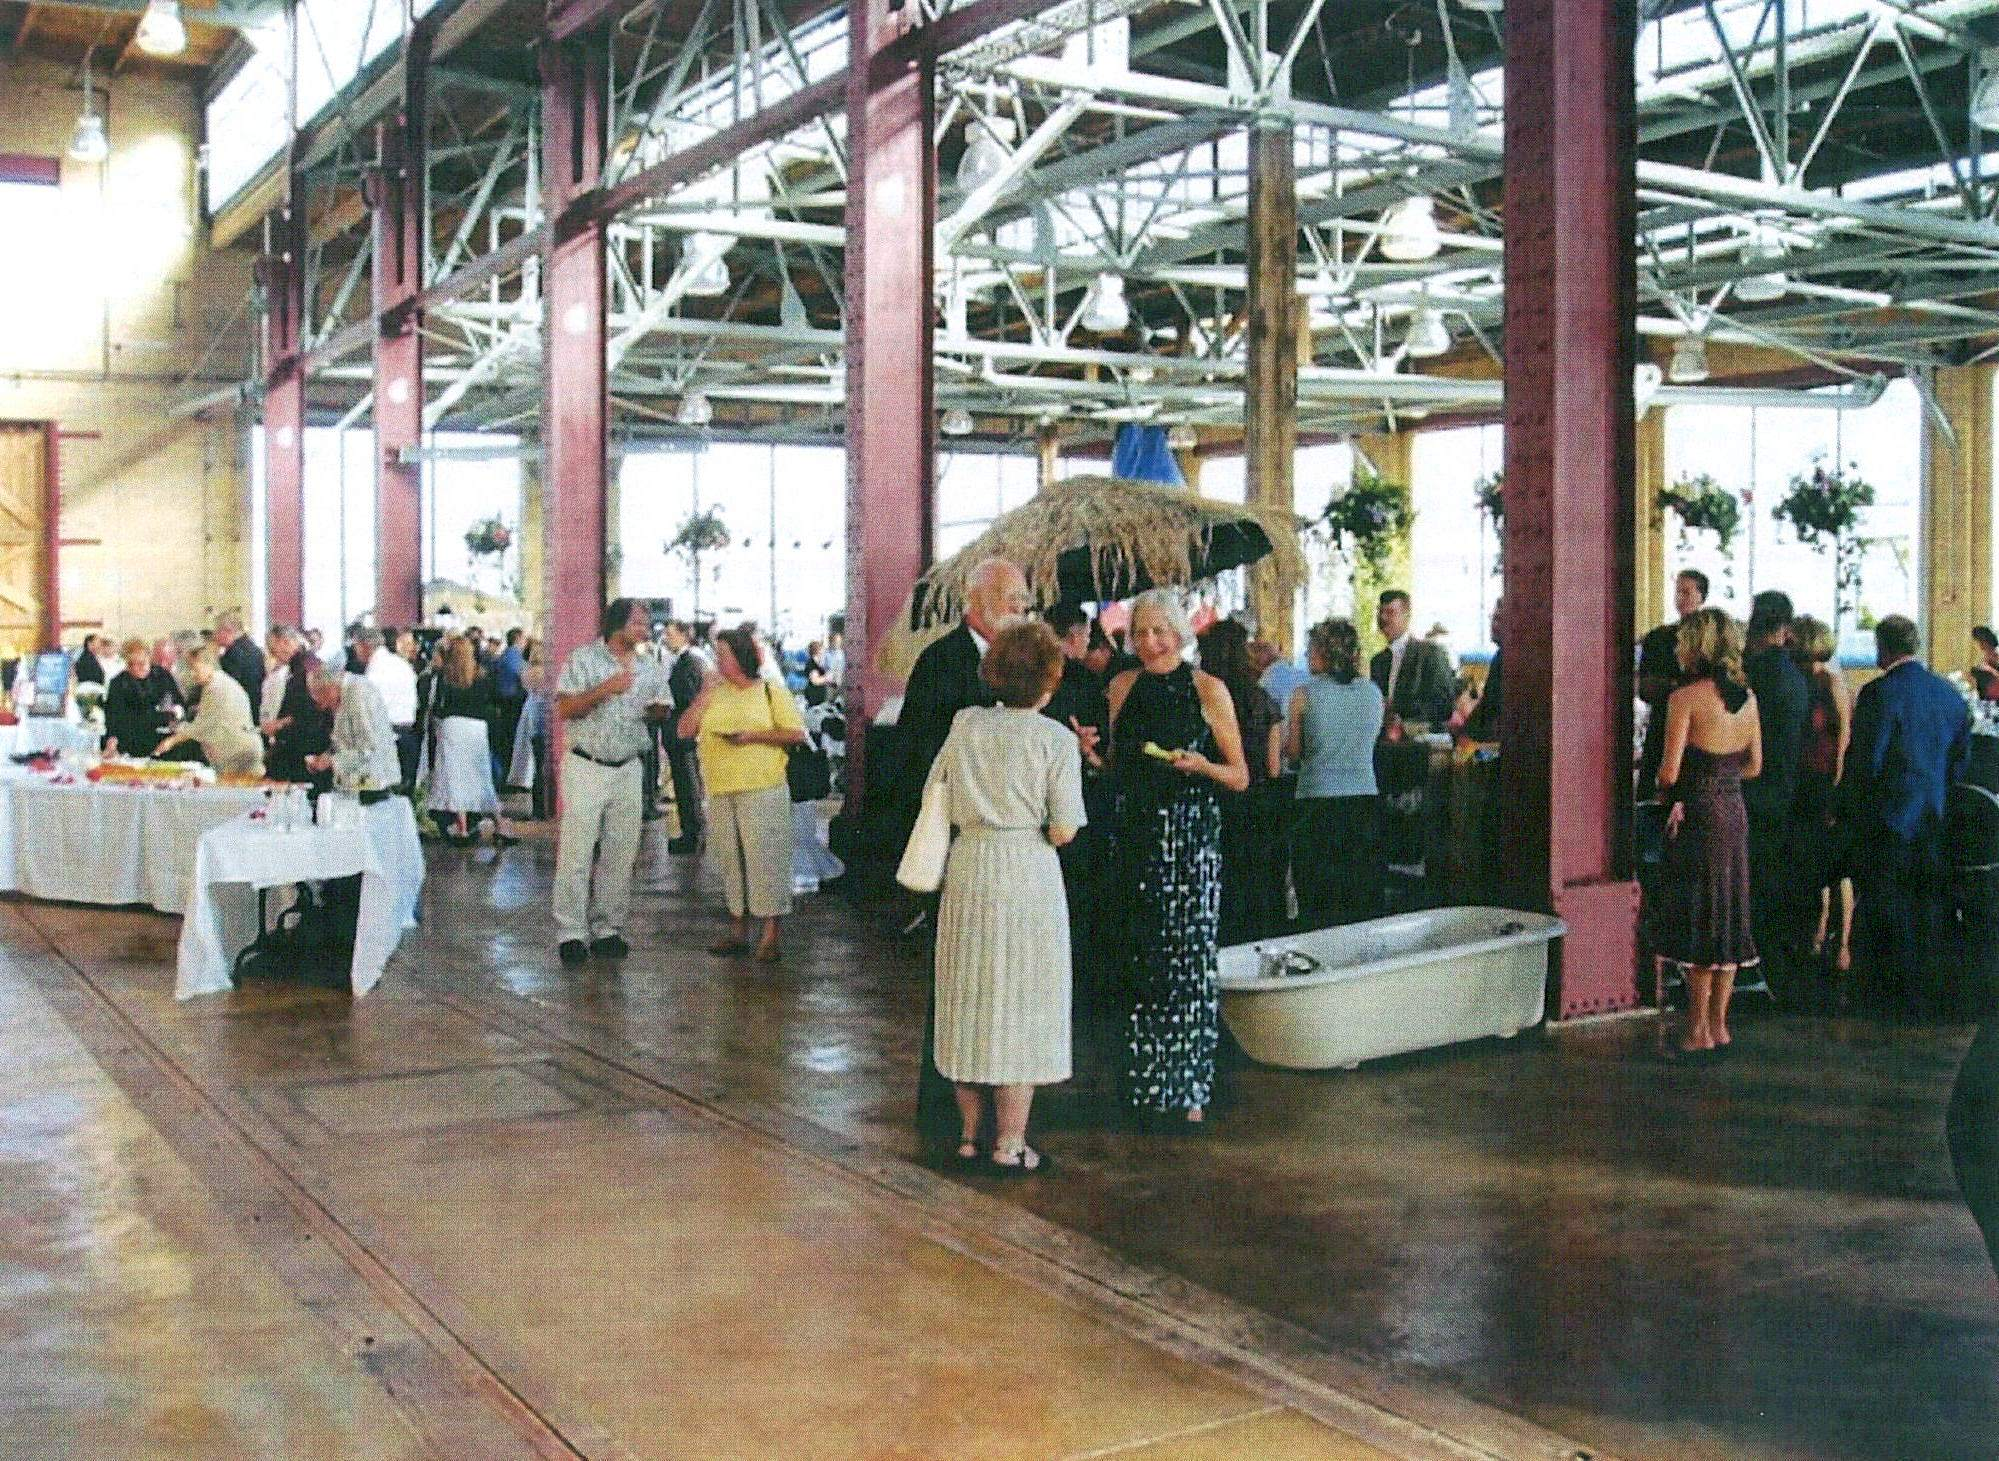 The restored Machine Shop at the historic Evanston Railroad Complex is used for public and private events.